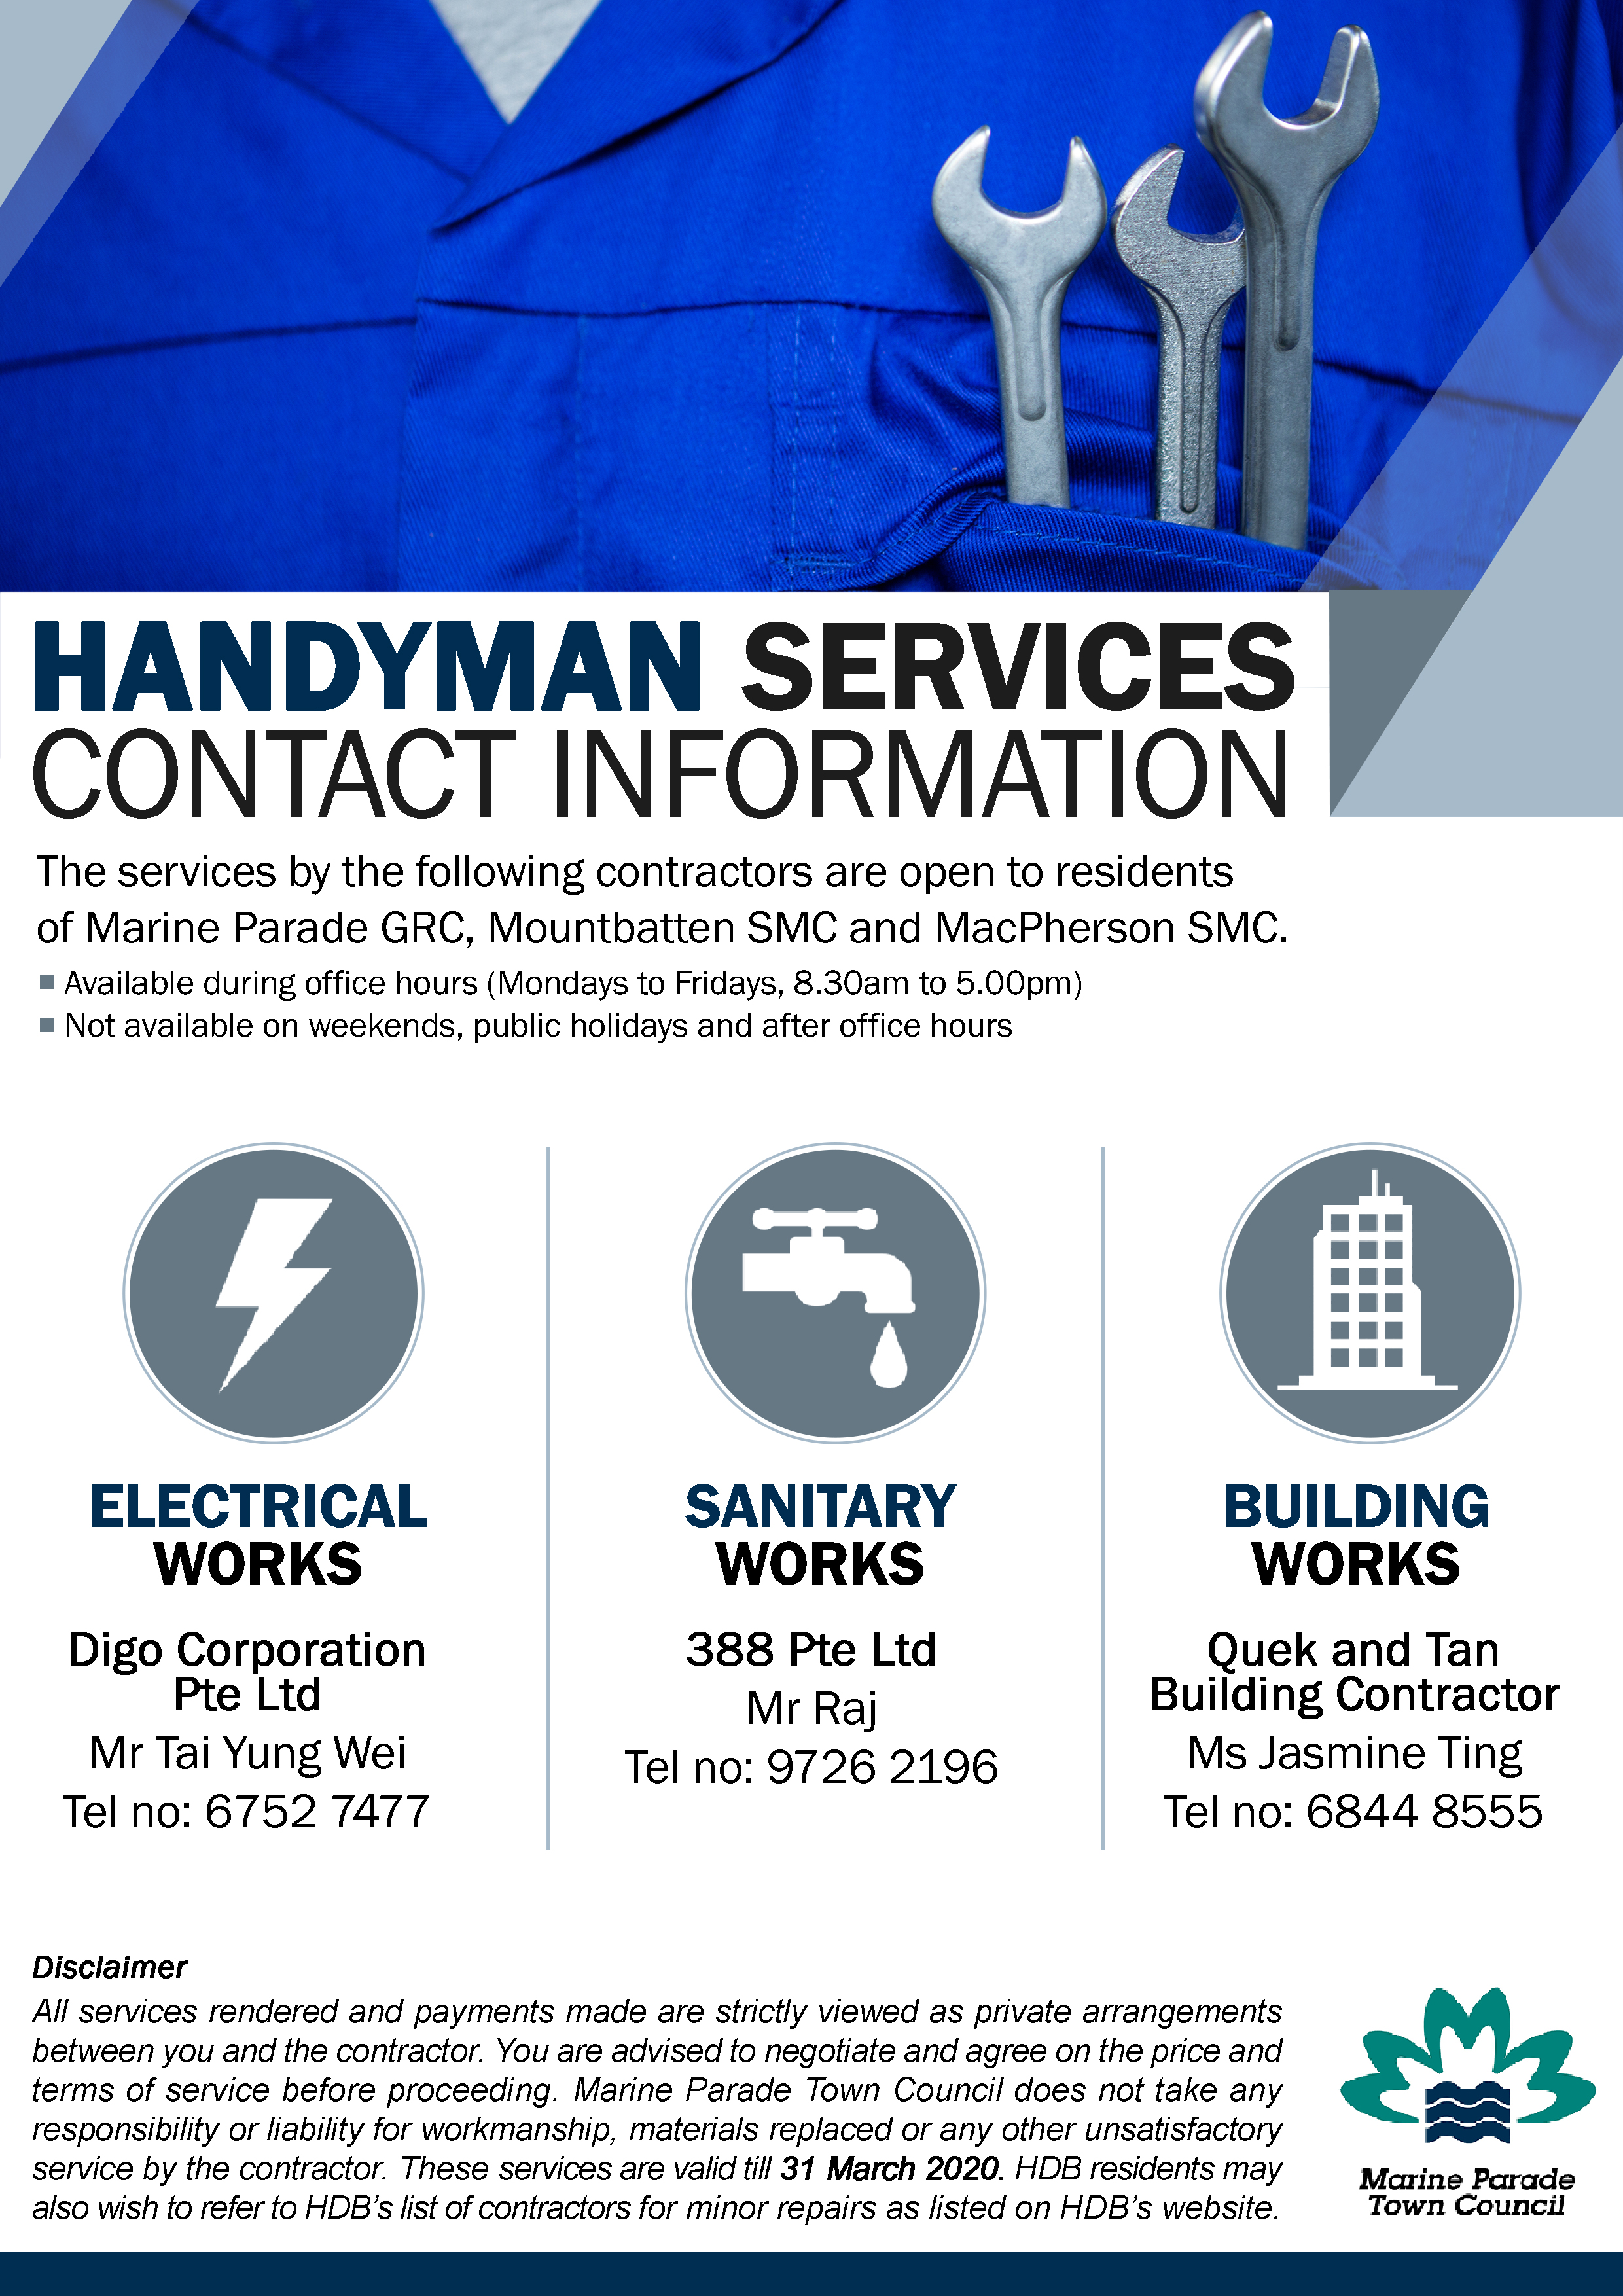 Handyman Services - Contact Information